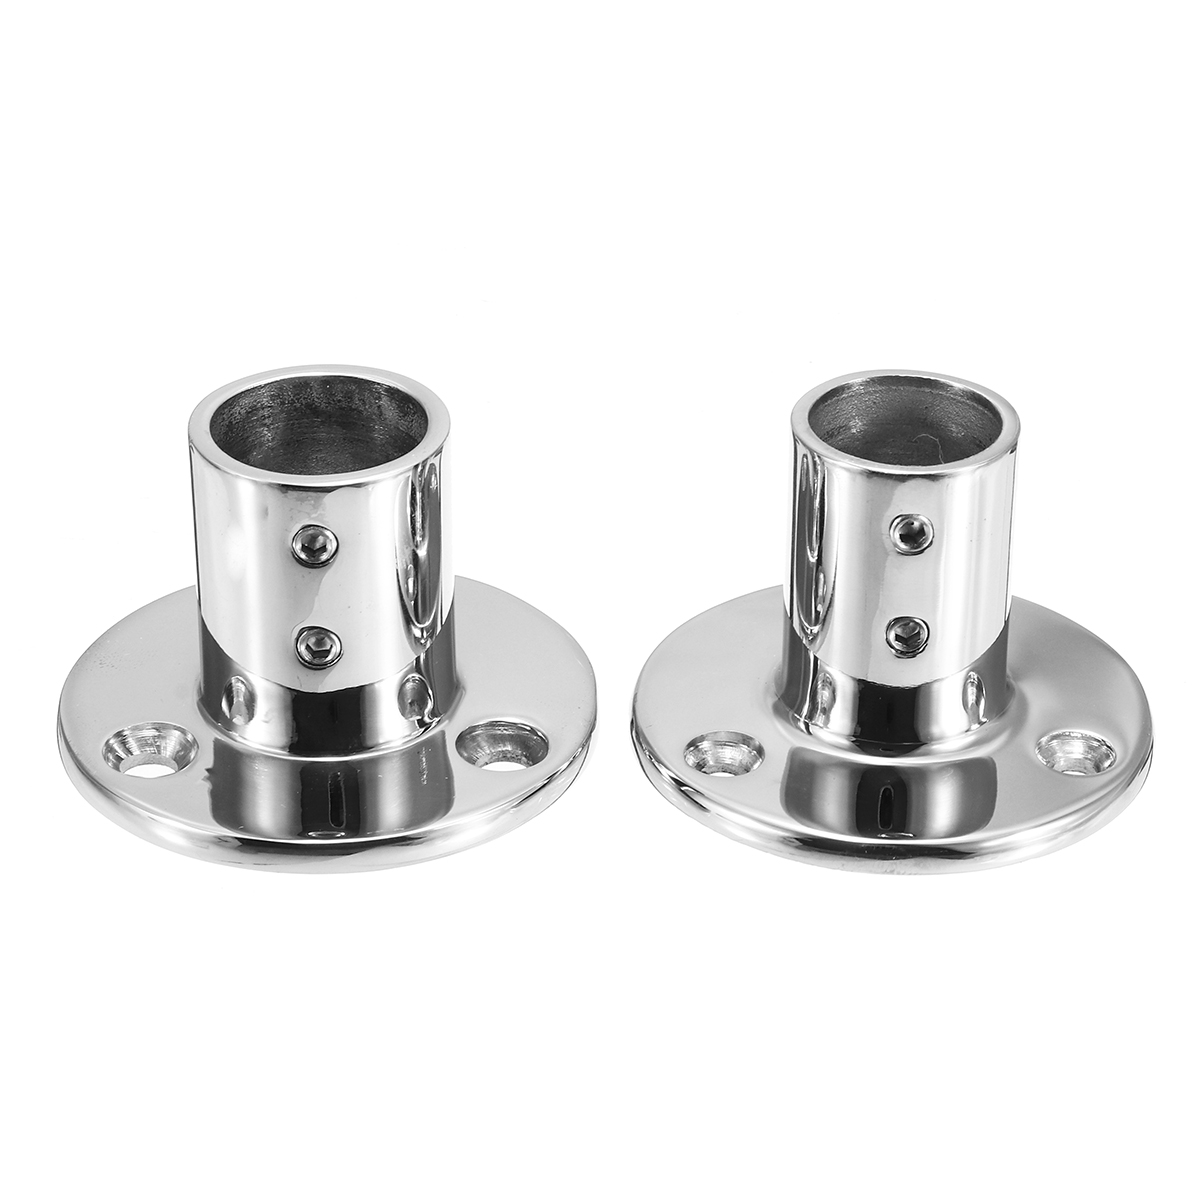 Boat Tube Pipe Base 316 Stainless Steel Marine 90° Railing Handrail Pipe Base Fitting Support Durable Rust-resistant Hardware